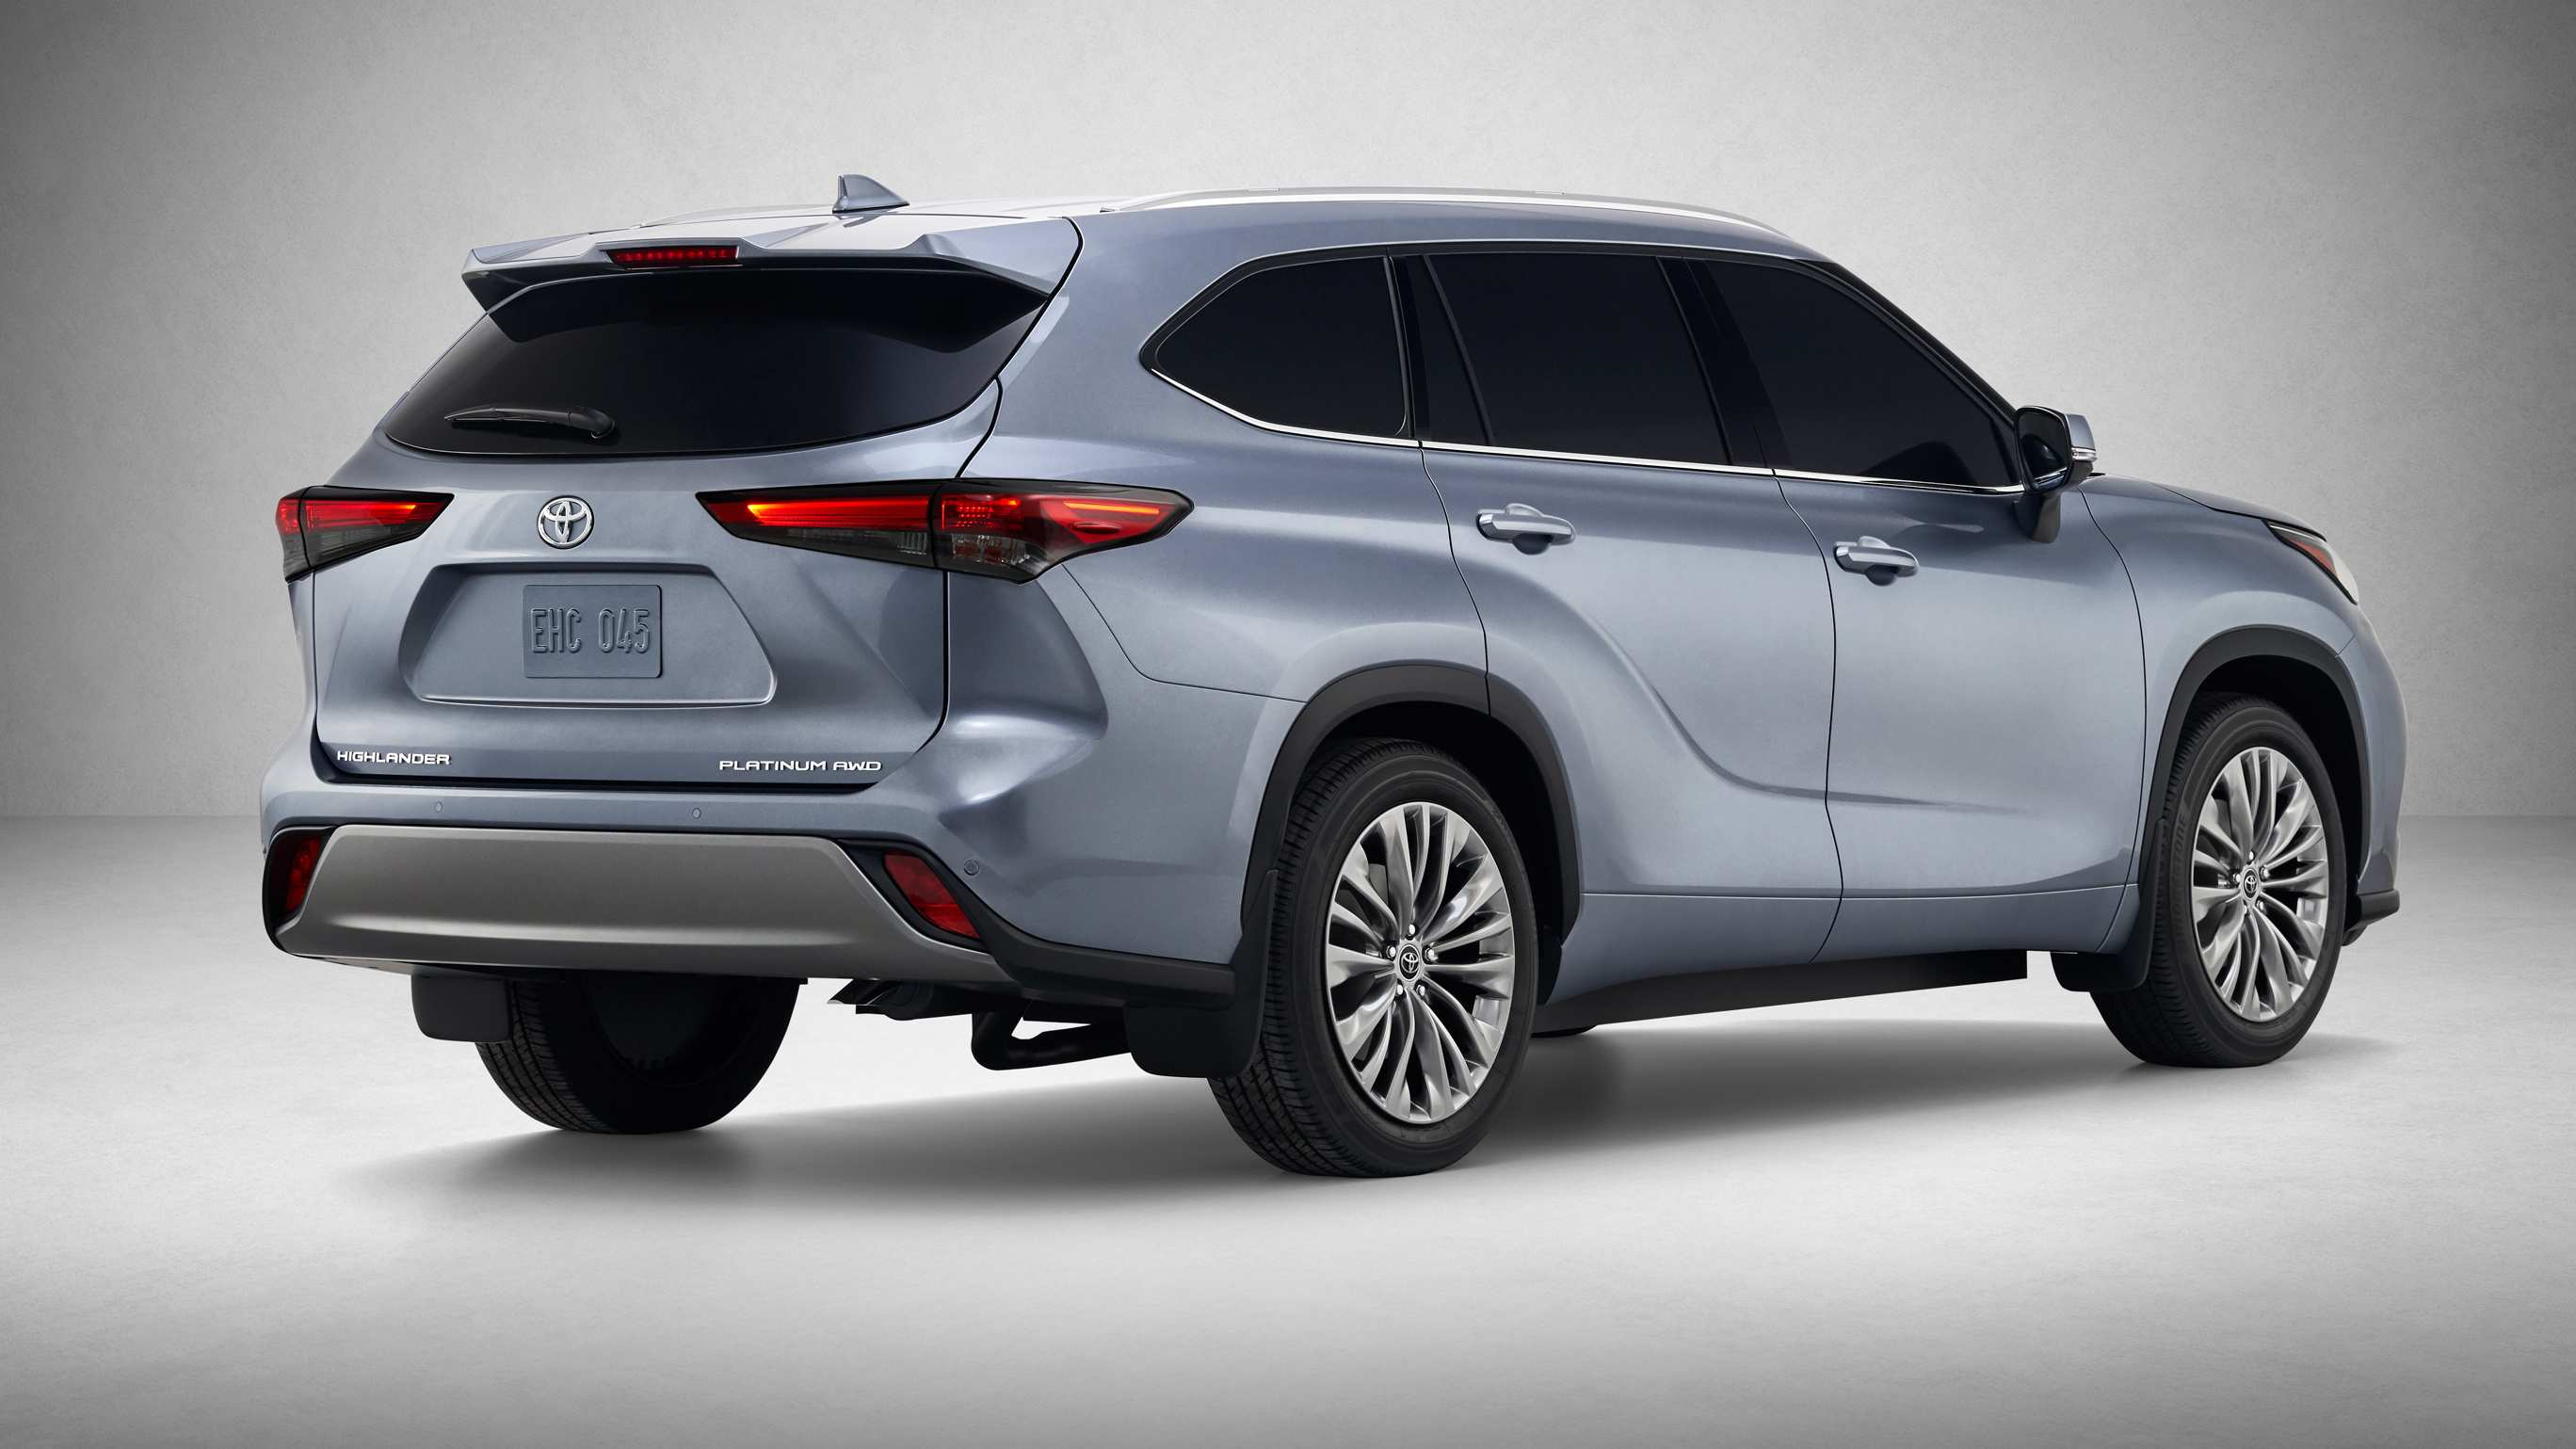 70 All New Toyota Kluger 2020 Australia Release Date Redesign and Concept with Toyota Kluger 2020 Australia Release Date